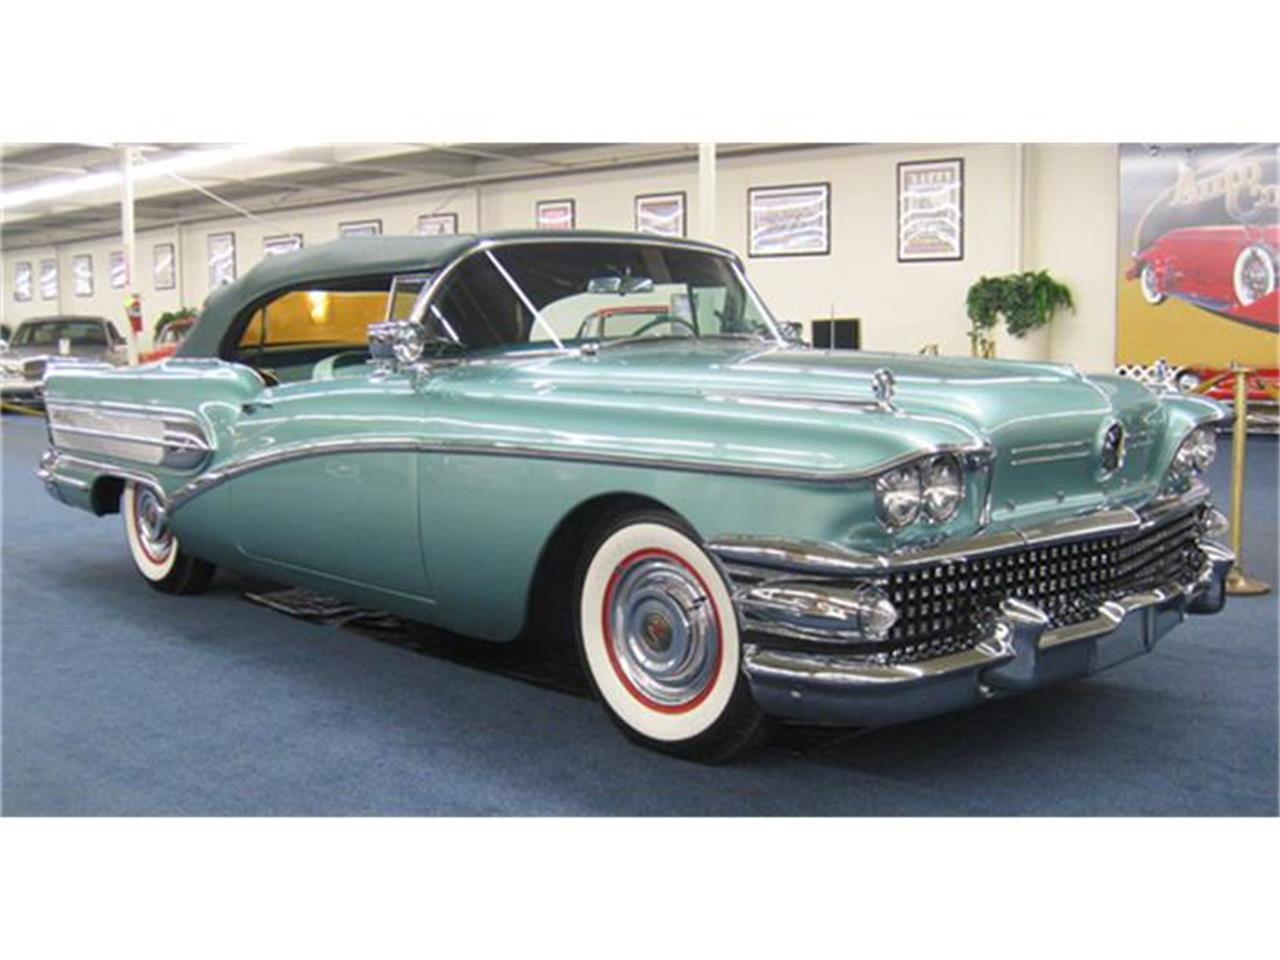 Classic Cadillac Cars For Sale Nv